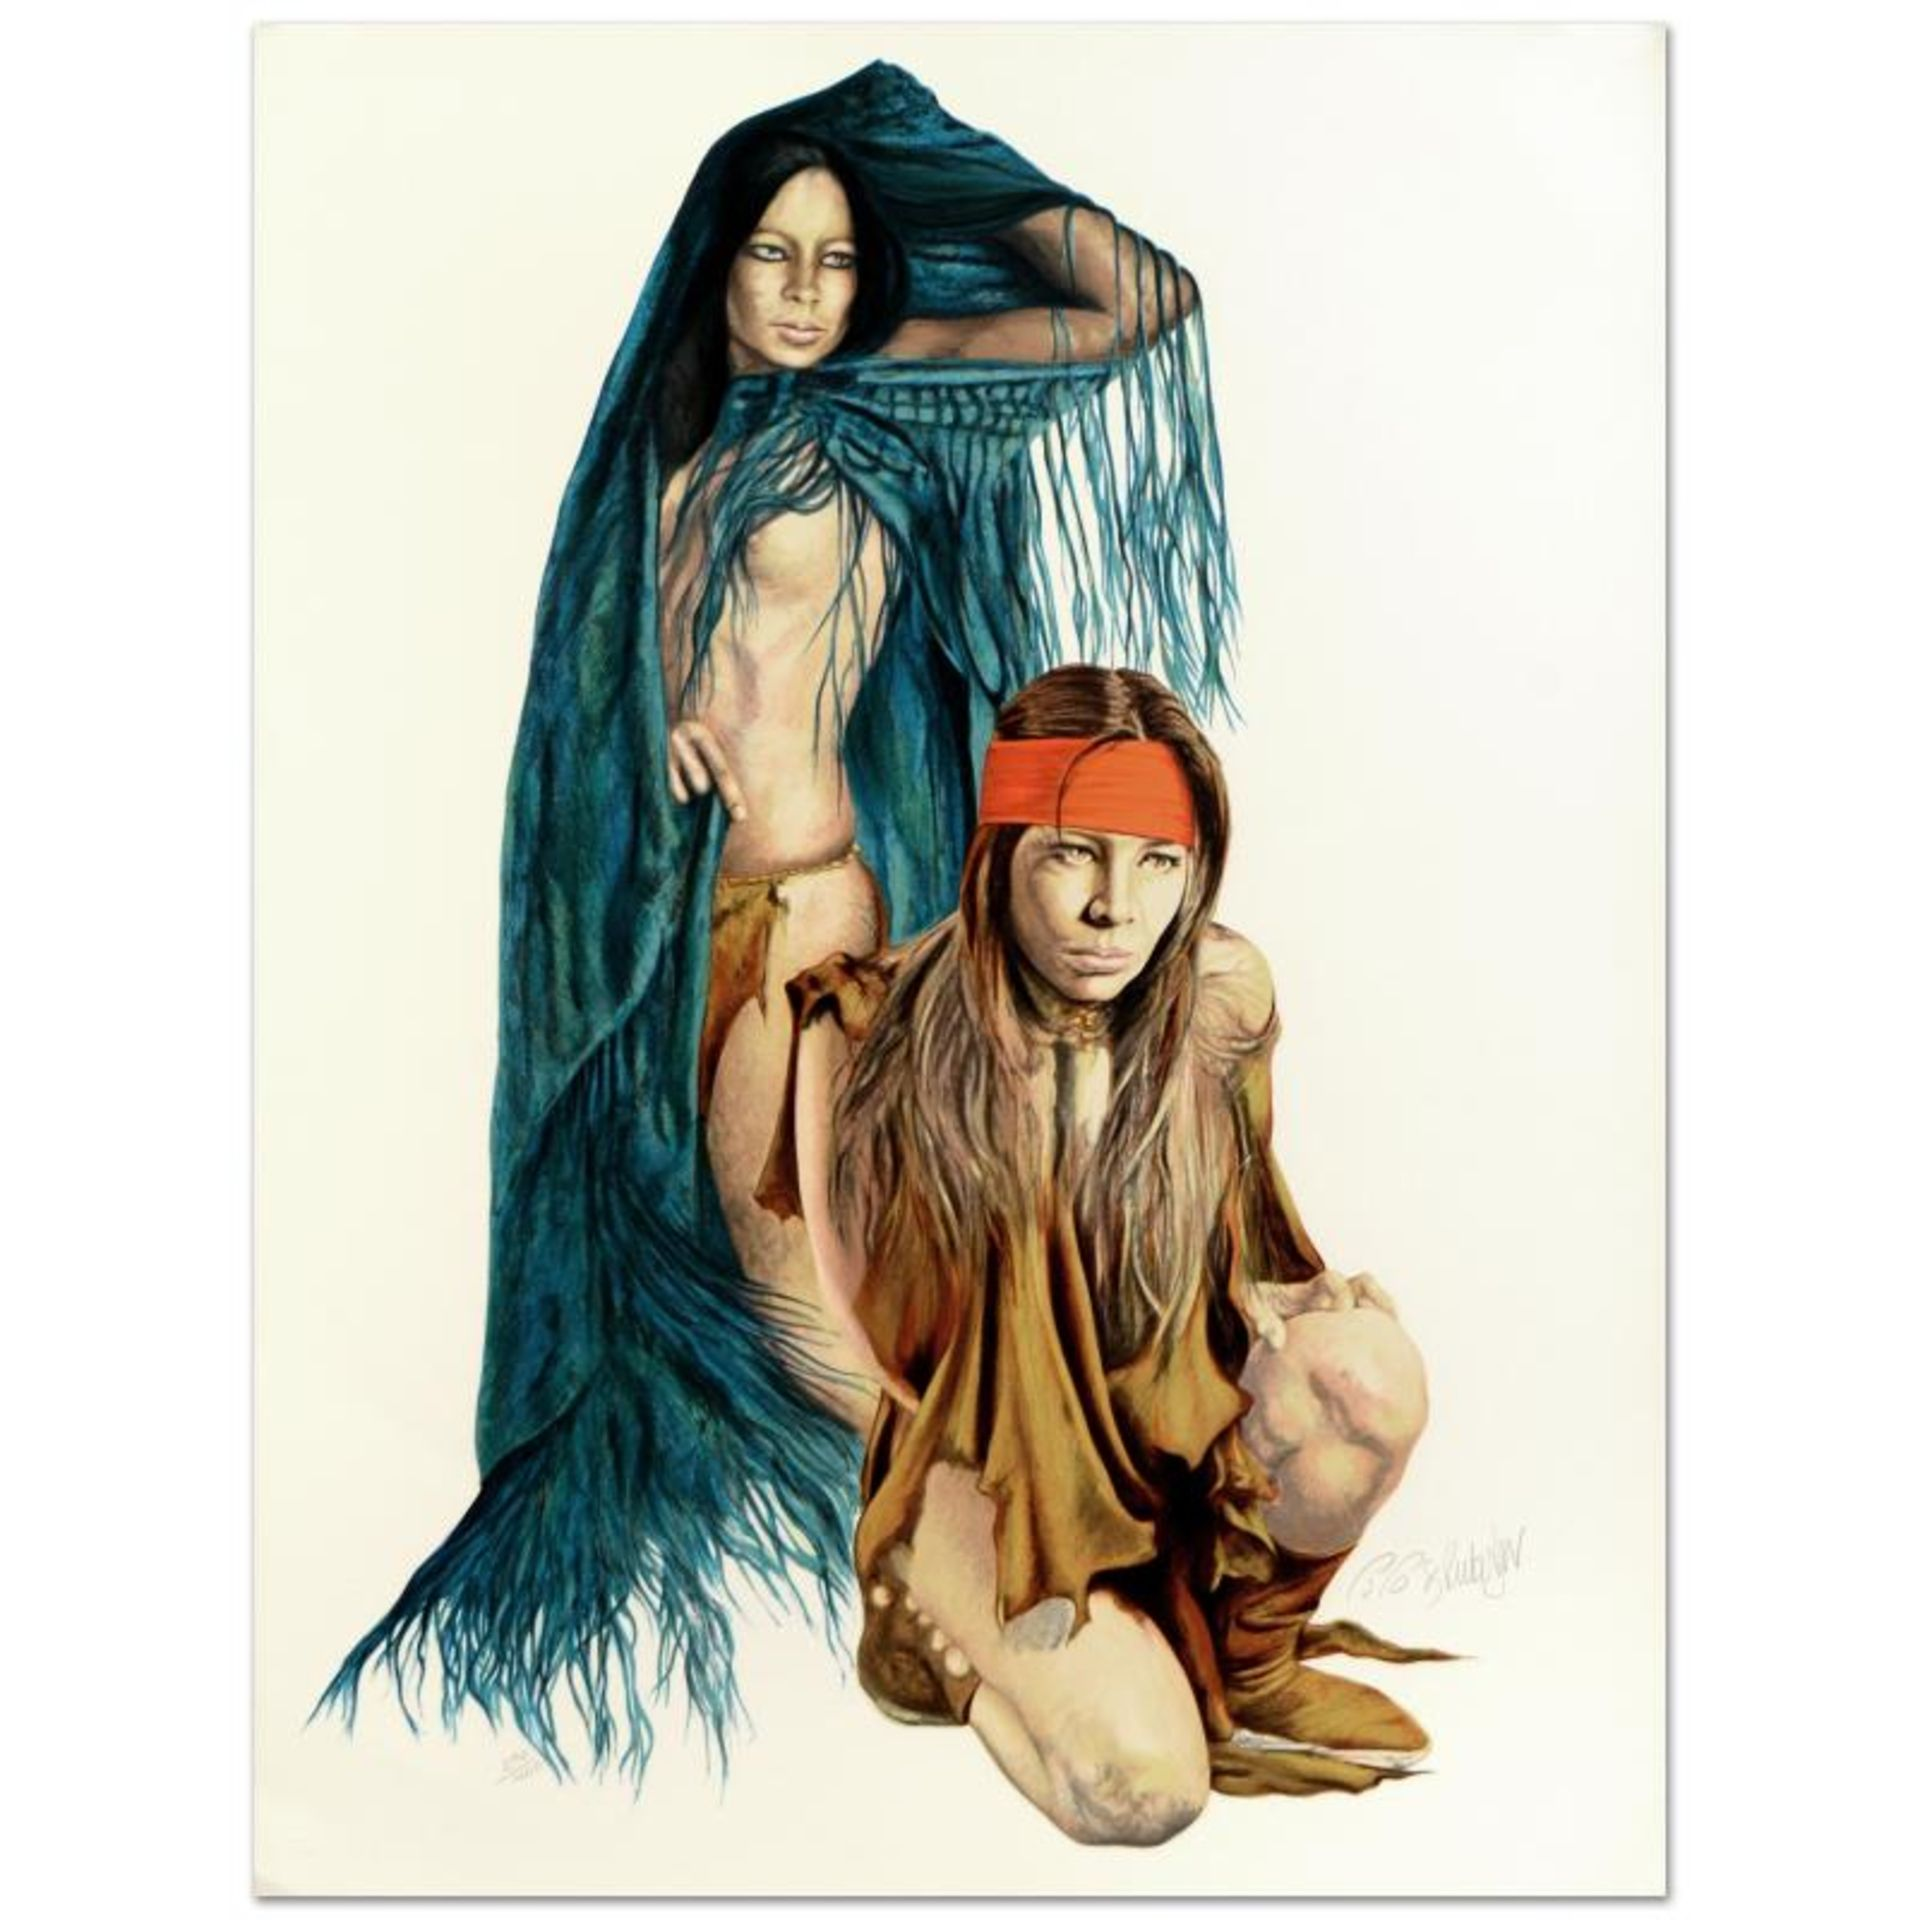 Popo & Ruby Lee, Limited Edition Serigraph, Numbered and Hand Signed by the Arti